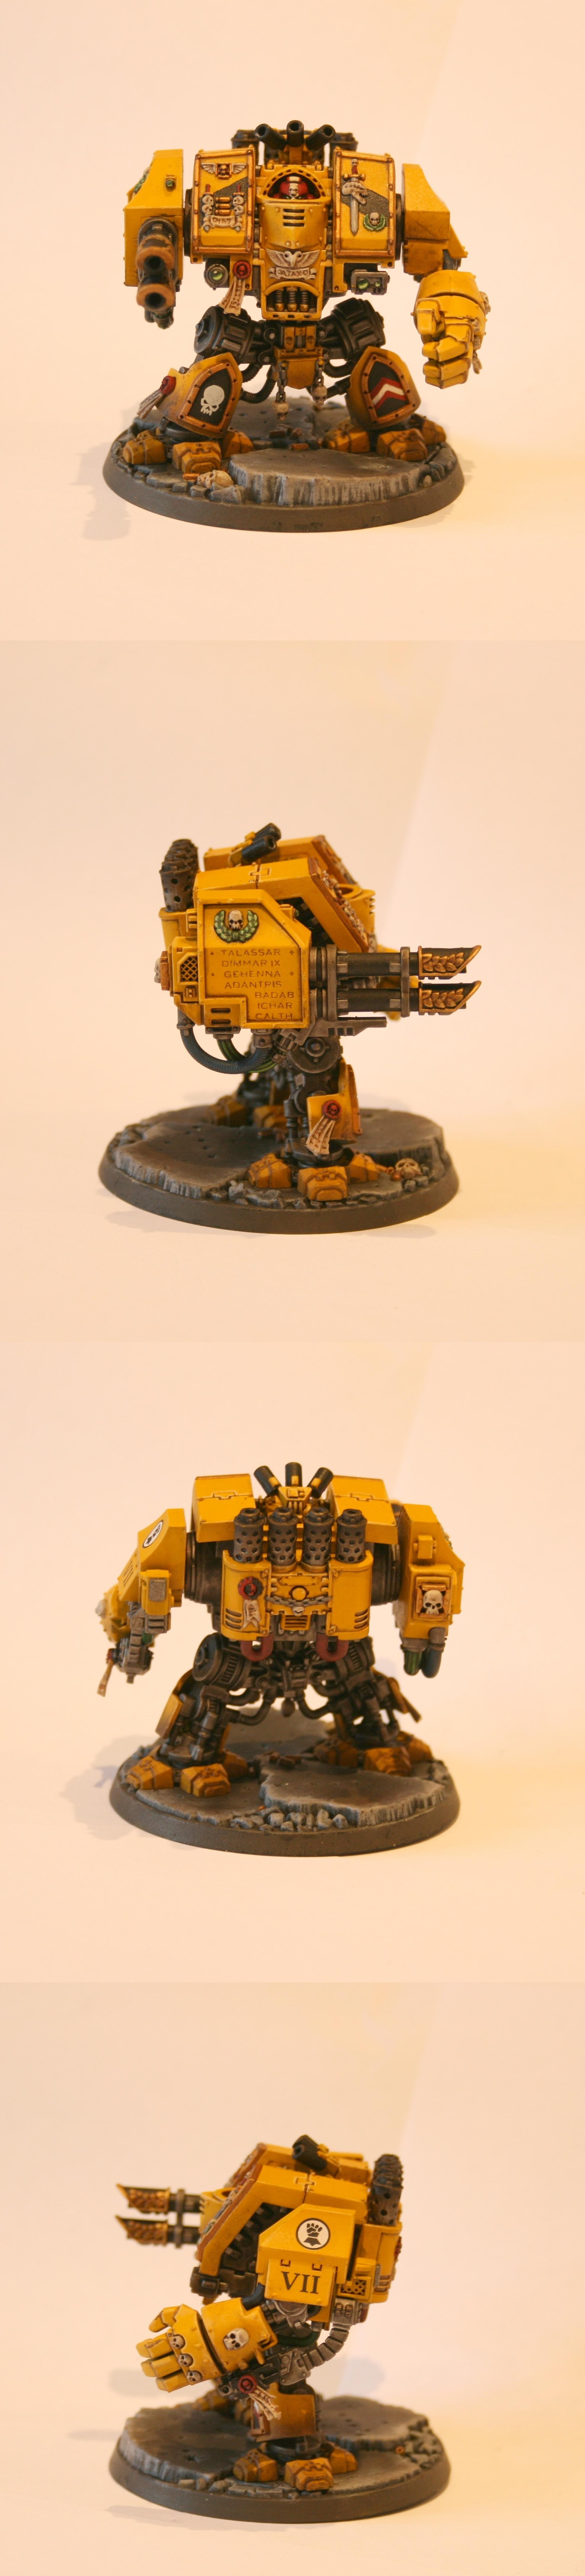 Dreadnought, Imperial Fists, Venerable Dreadnought